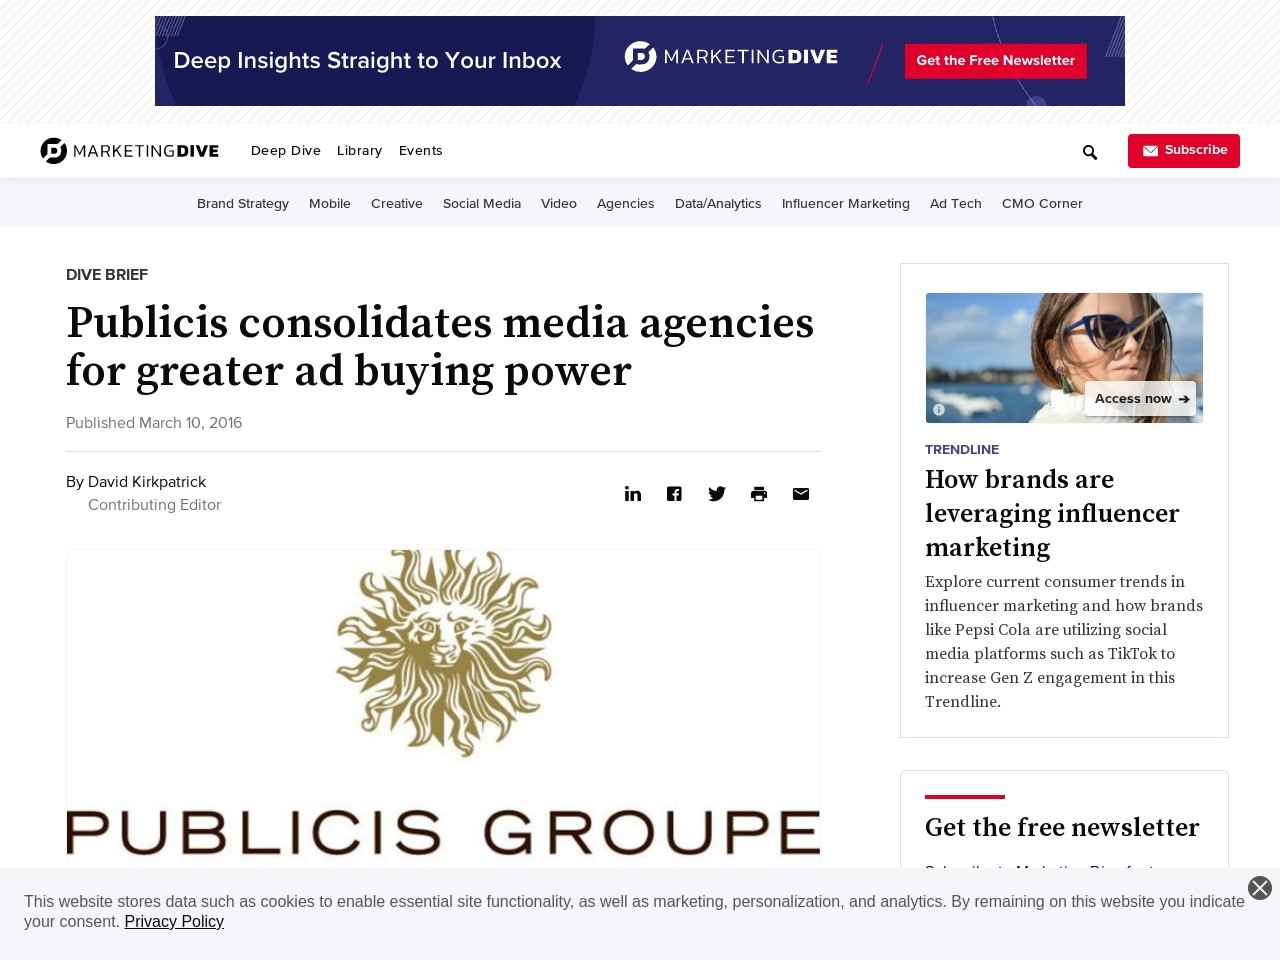 Publicis consolidates media agencies for greater ad buying power